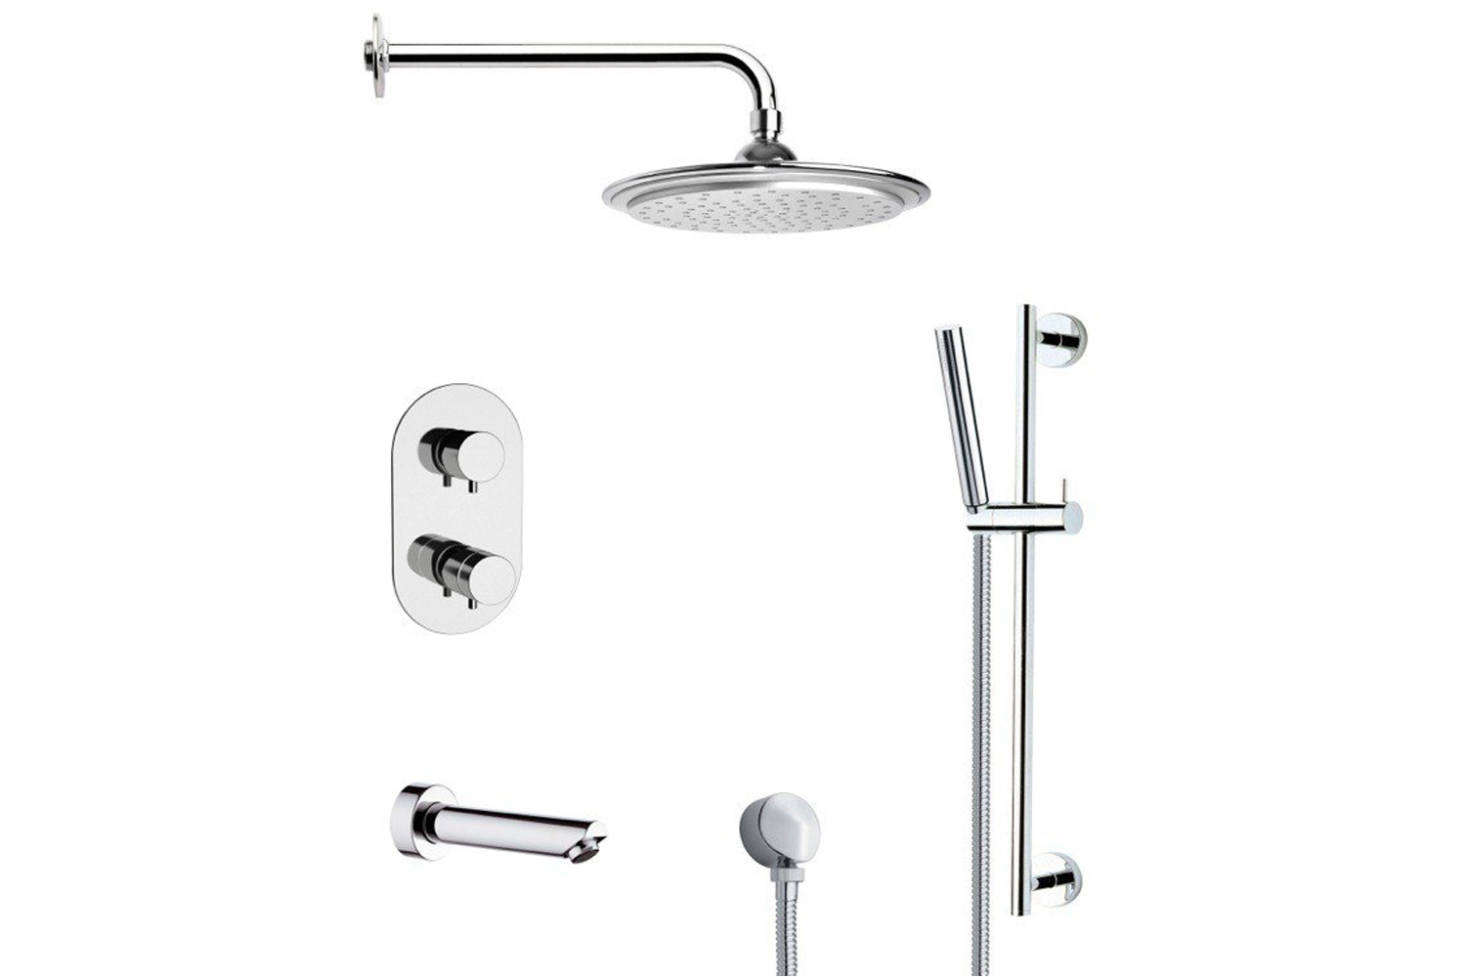 The Remer Galiano Round Thermostatic Chrome Faucet (TSR9407) is $907.4